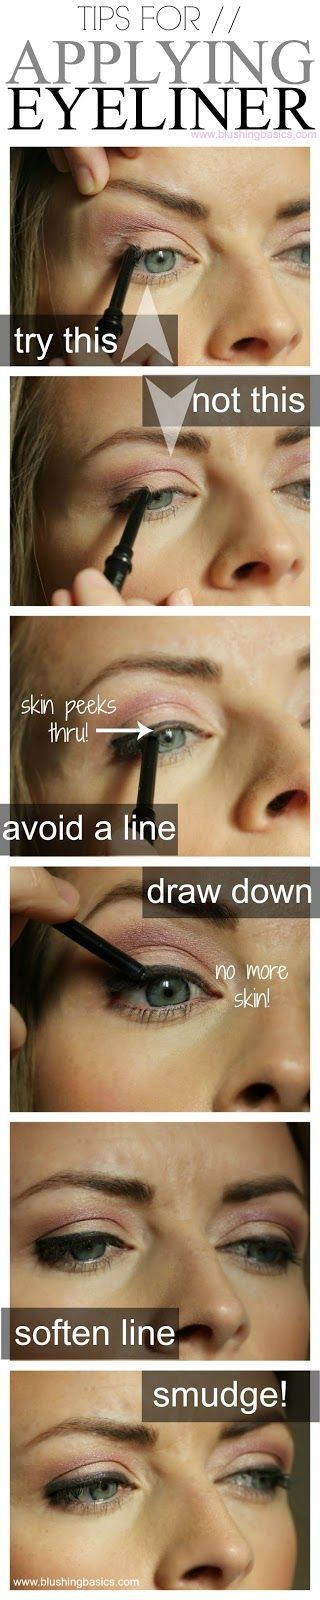 FabFashionFix - Fabulous Fashion Fix | Beauty: How to Apply Eyeliner Tutorial